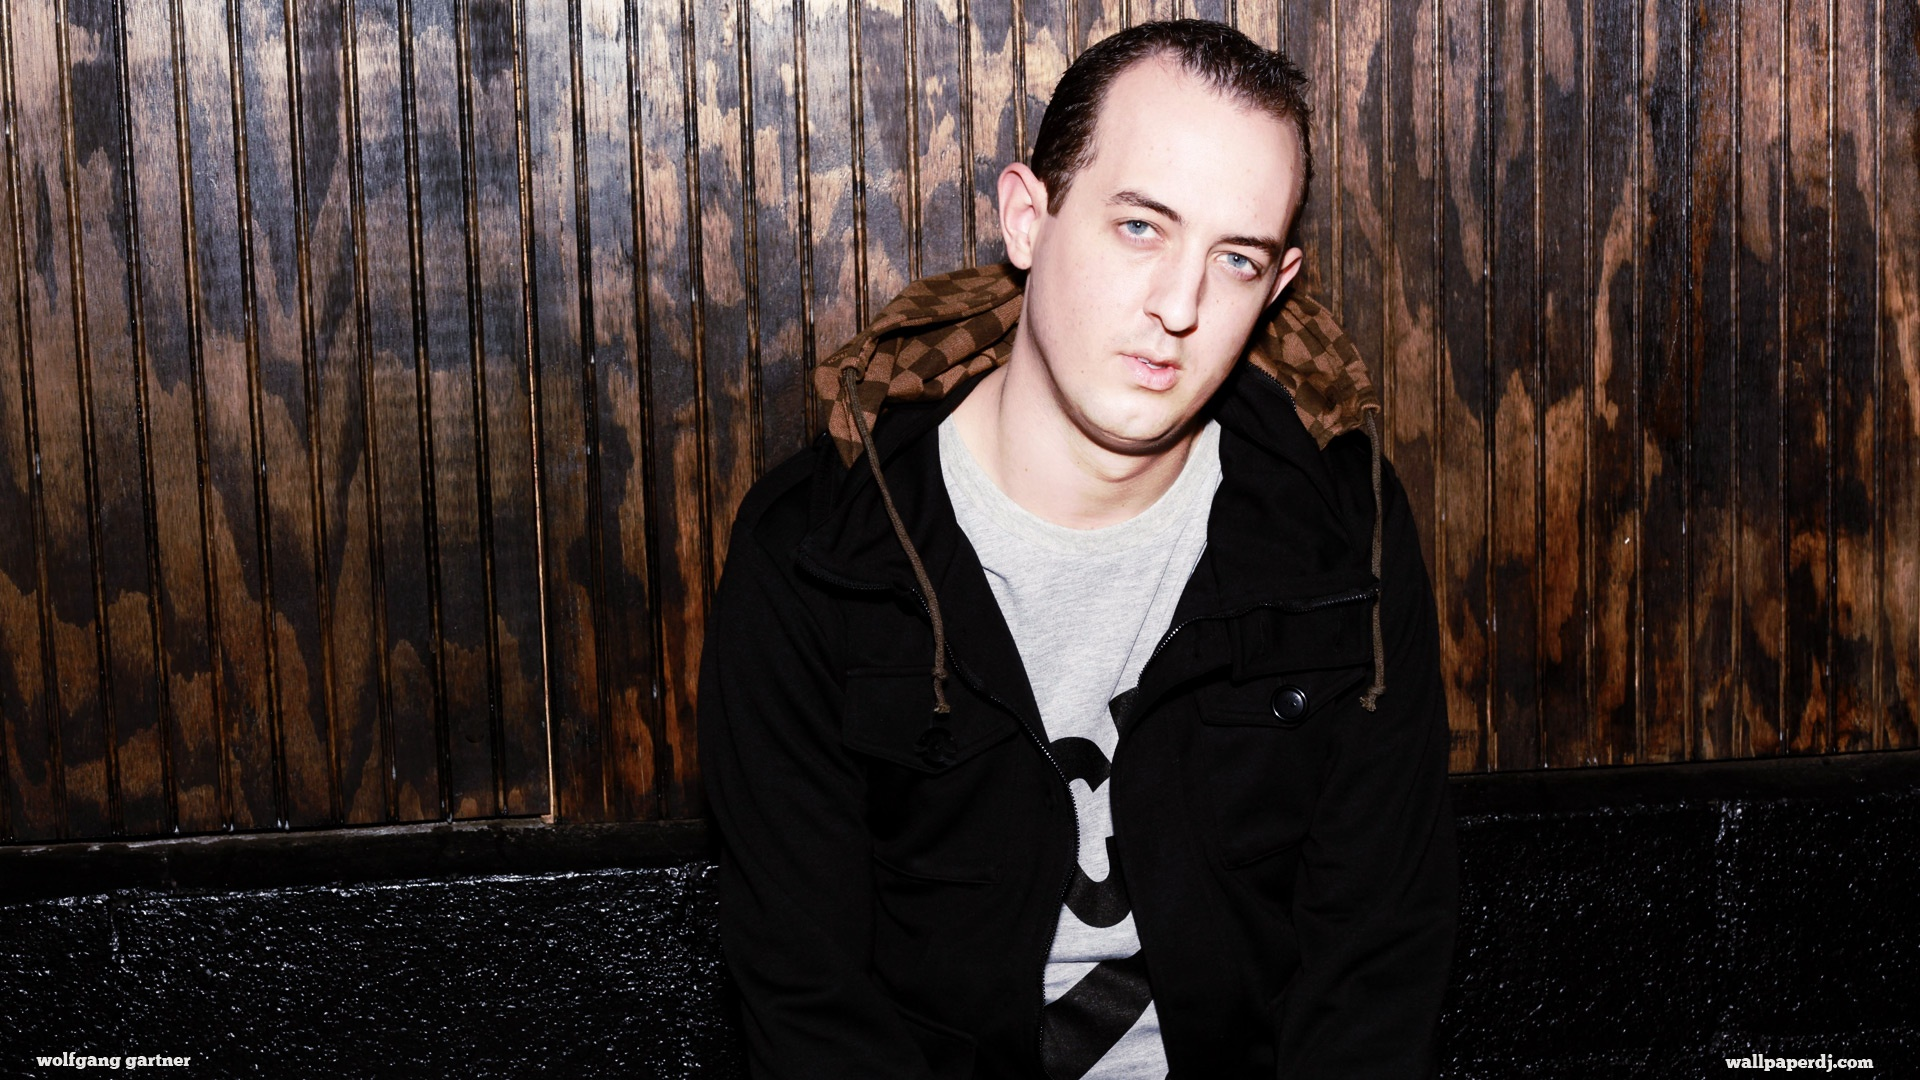 Wolfgang Gartner HD and Wide Wallpapers